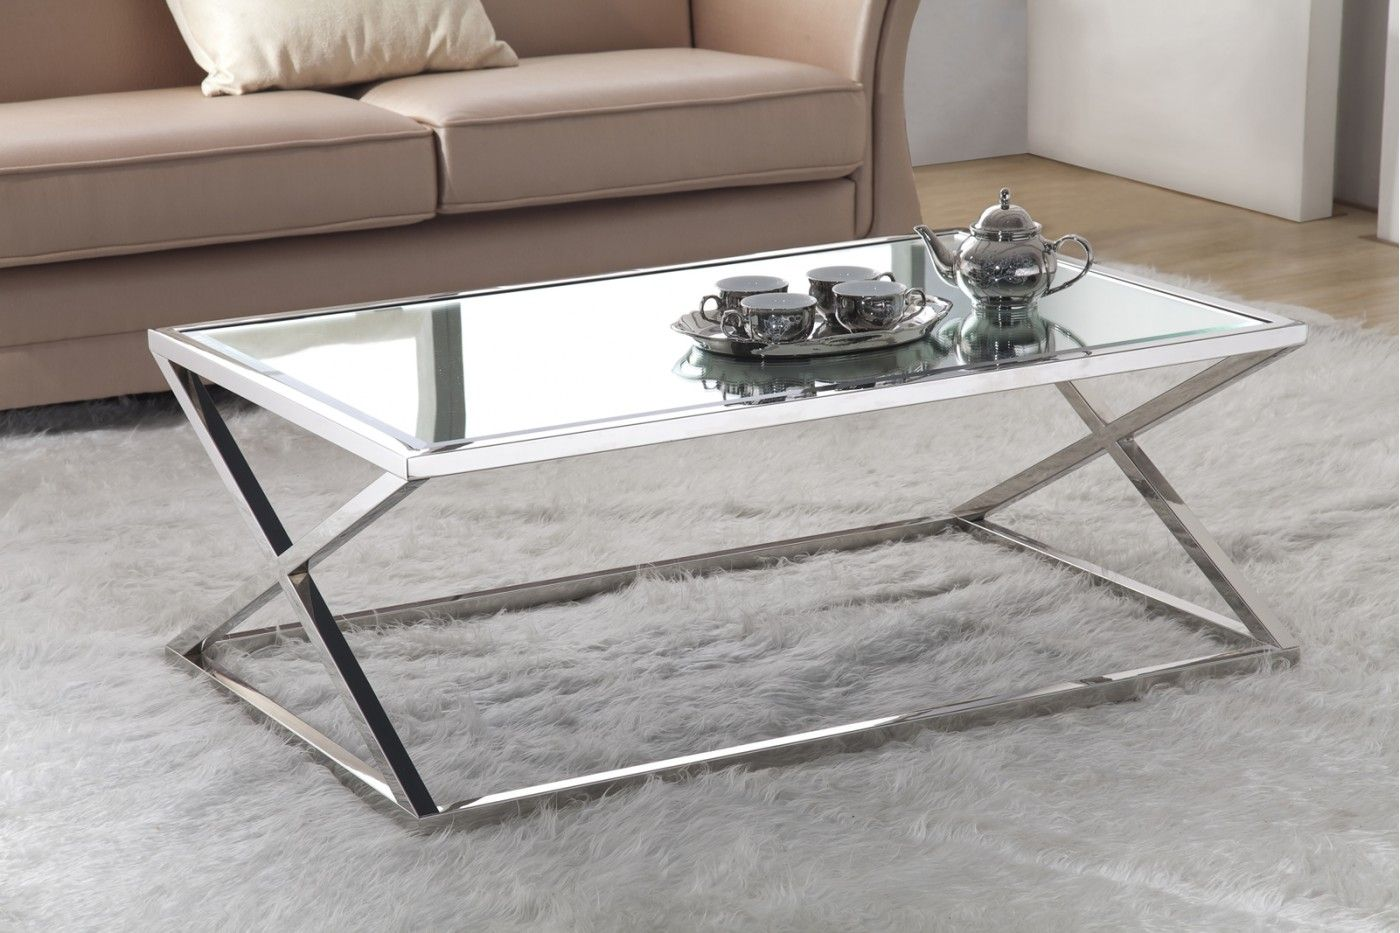 Features X Coffee Table Has A Stainless Steel Base And Isavailable With A Smoke Gl Mirrored Coffee Tables Stainless Steel Coffee Table Coffee Tables For Sale